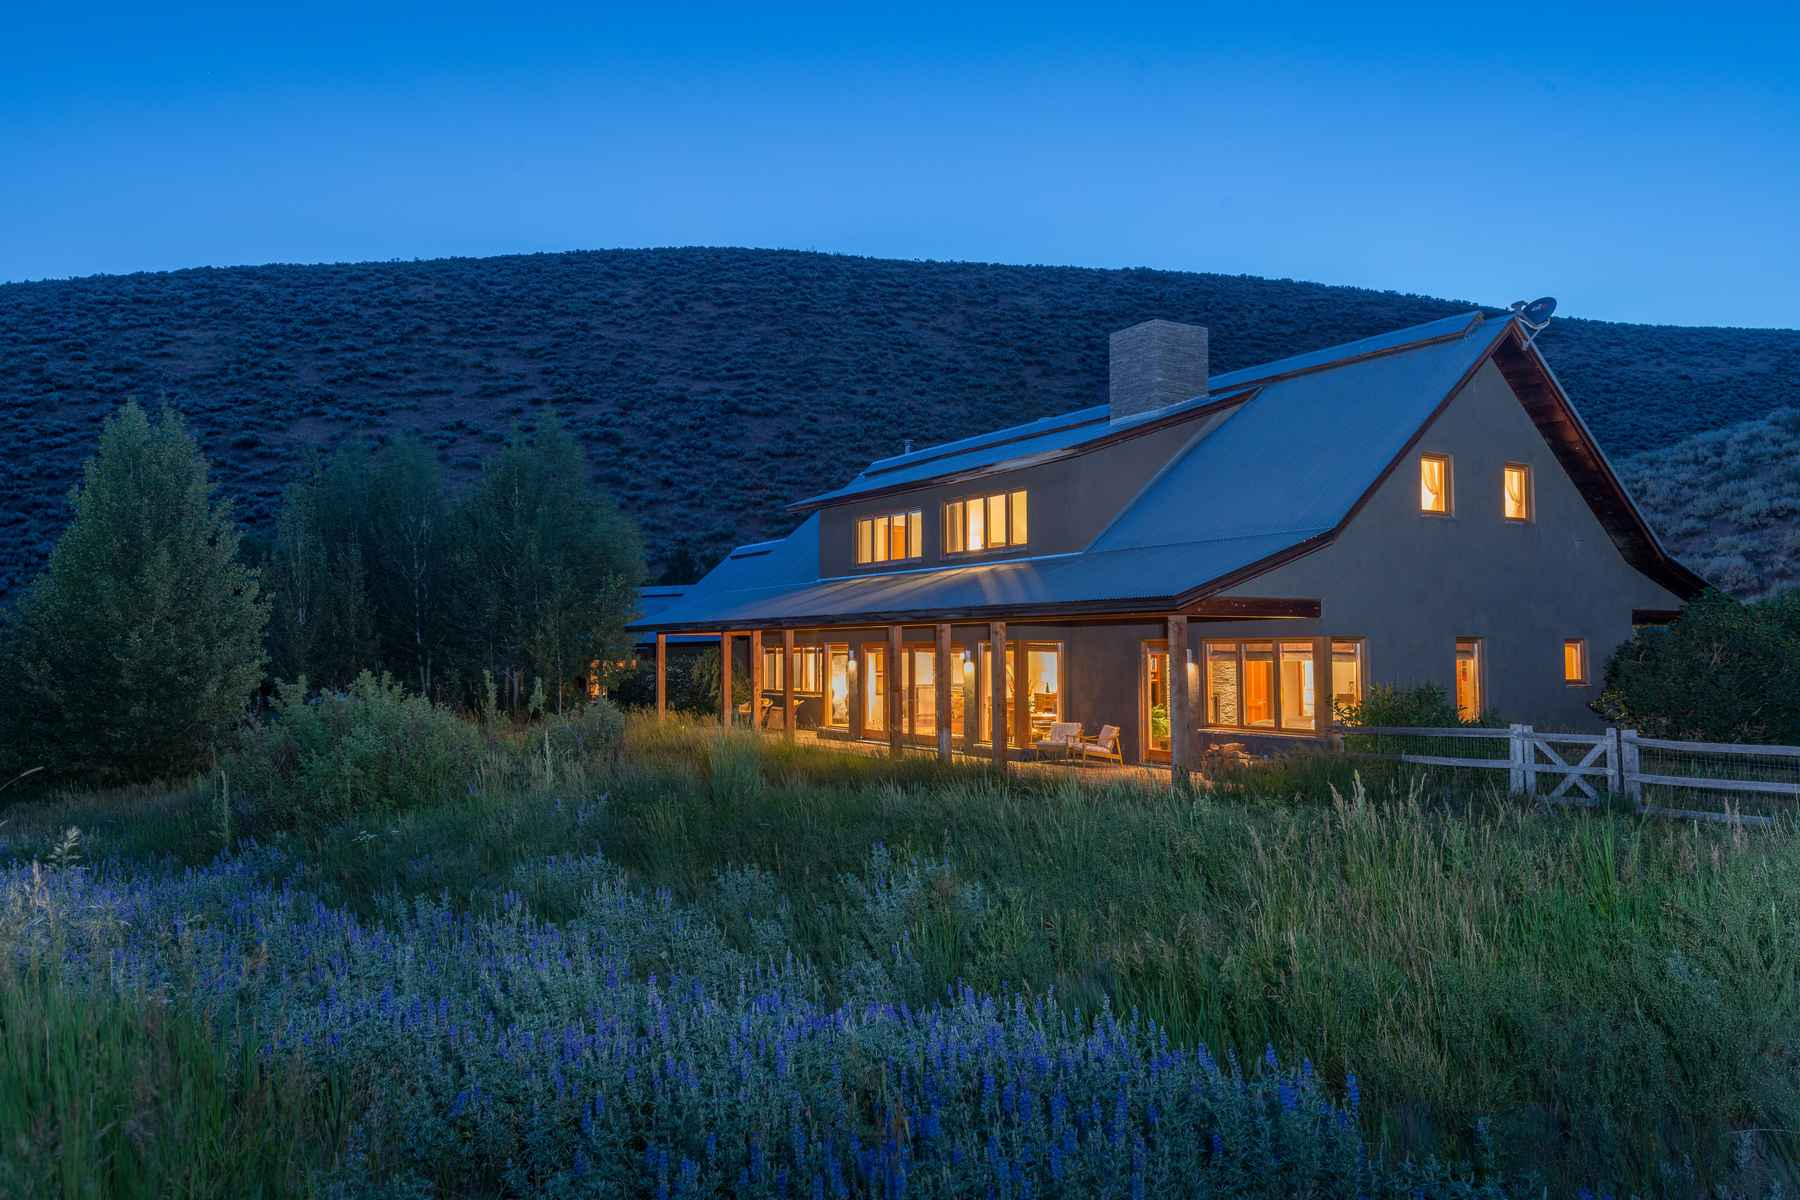 Mountain Contemporary with Privacy 224 Red Devil Dr Hailey, Idaho 83333 United States